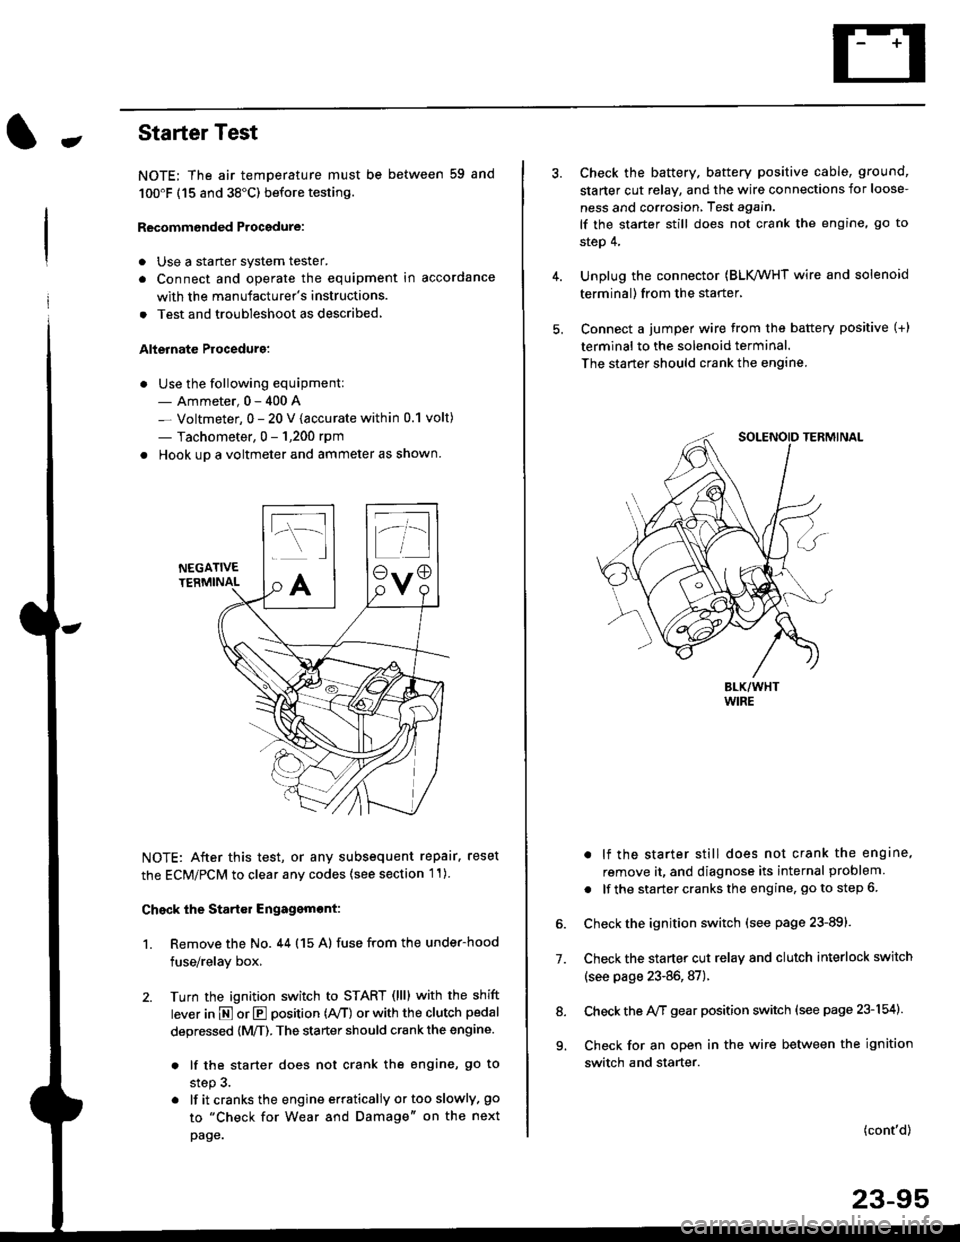 Engine Honda Civic 1997 6g Workshop Manual Under Hood Fuse Relay Box Page 1565